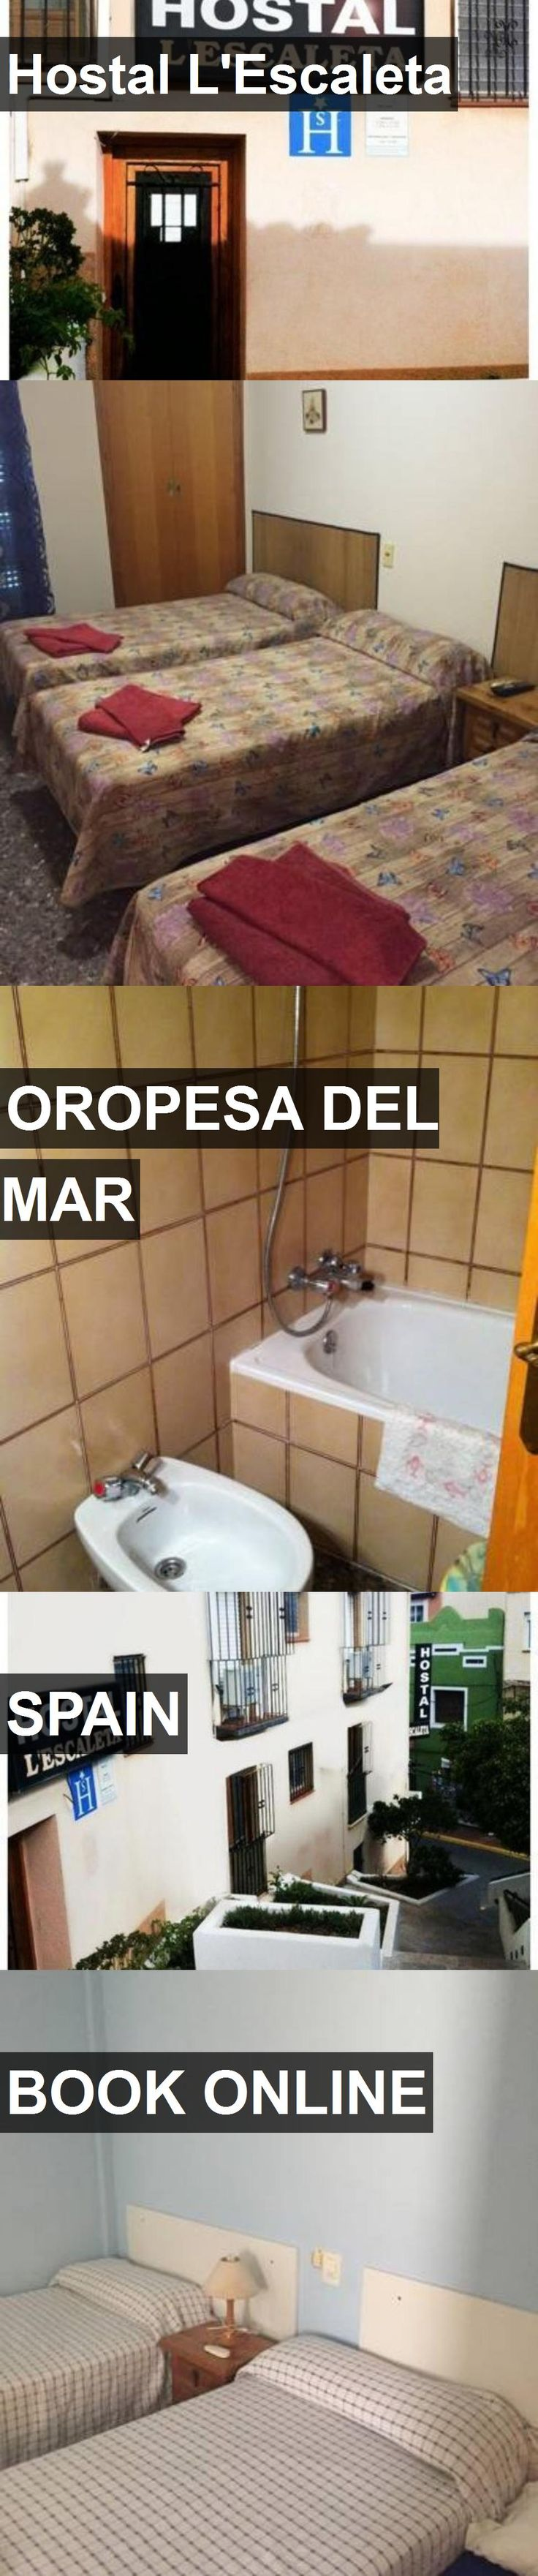 Hotel Hostal L'Escaleta in Oropesa del Mar, Spain. For more information, photos, reviews and best prices please follow the link. #Spain #OropesadelMar #travel #vacation #hotel